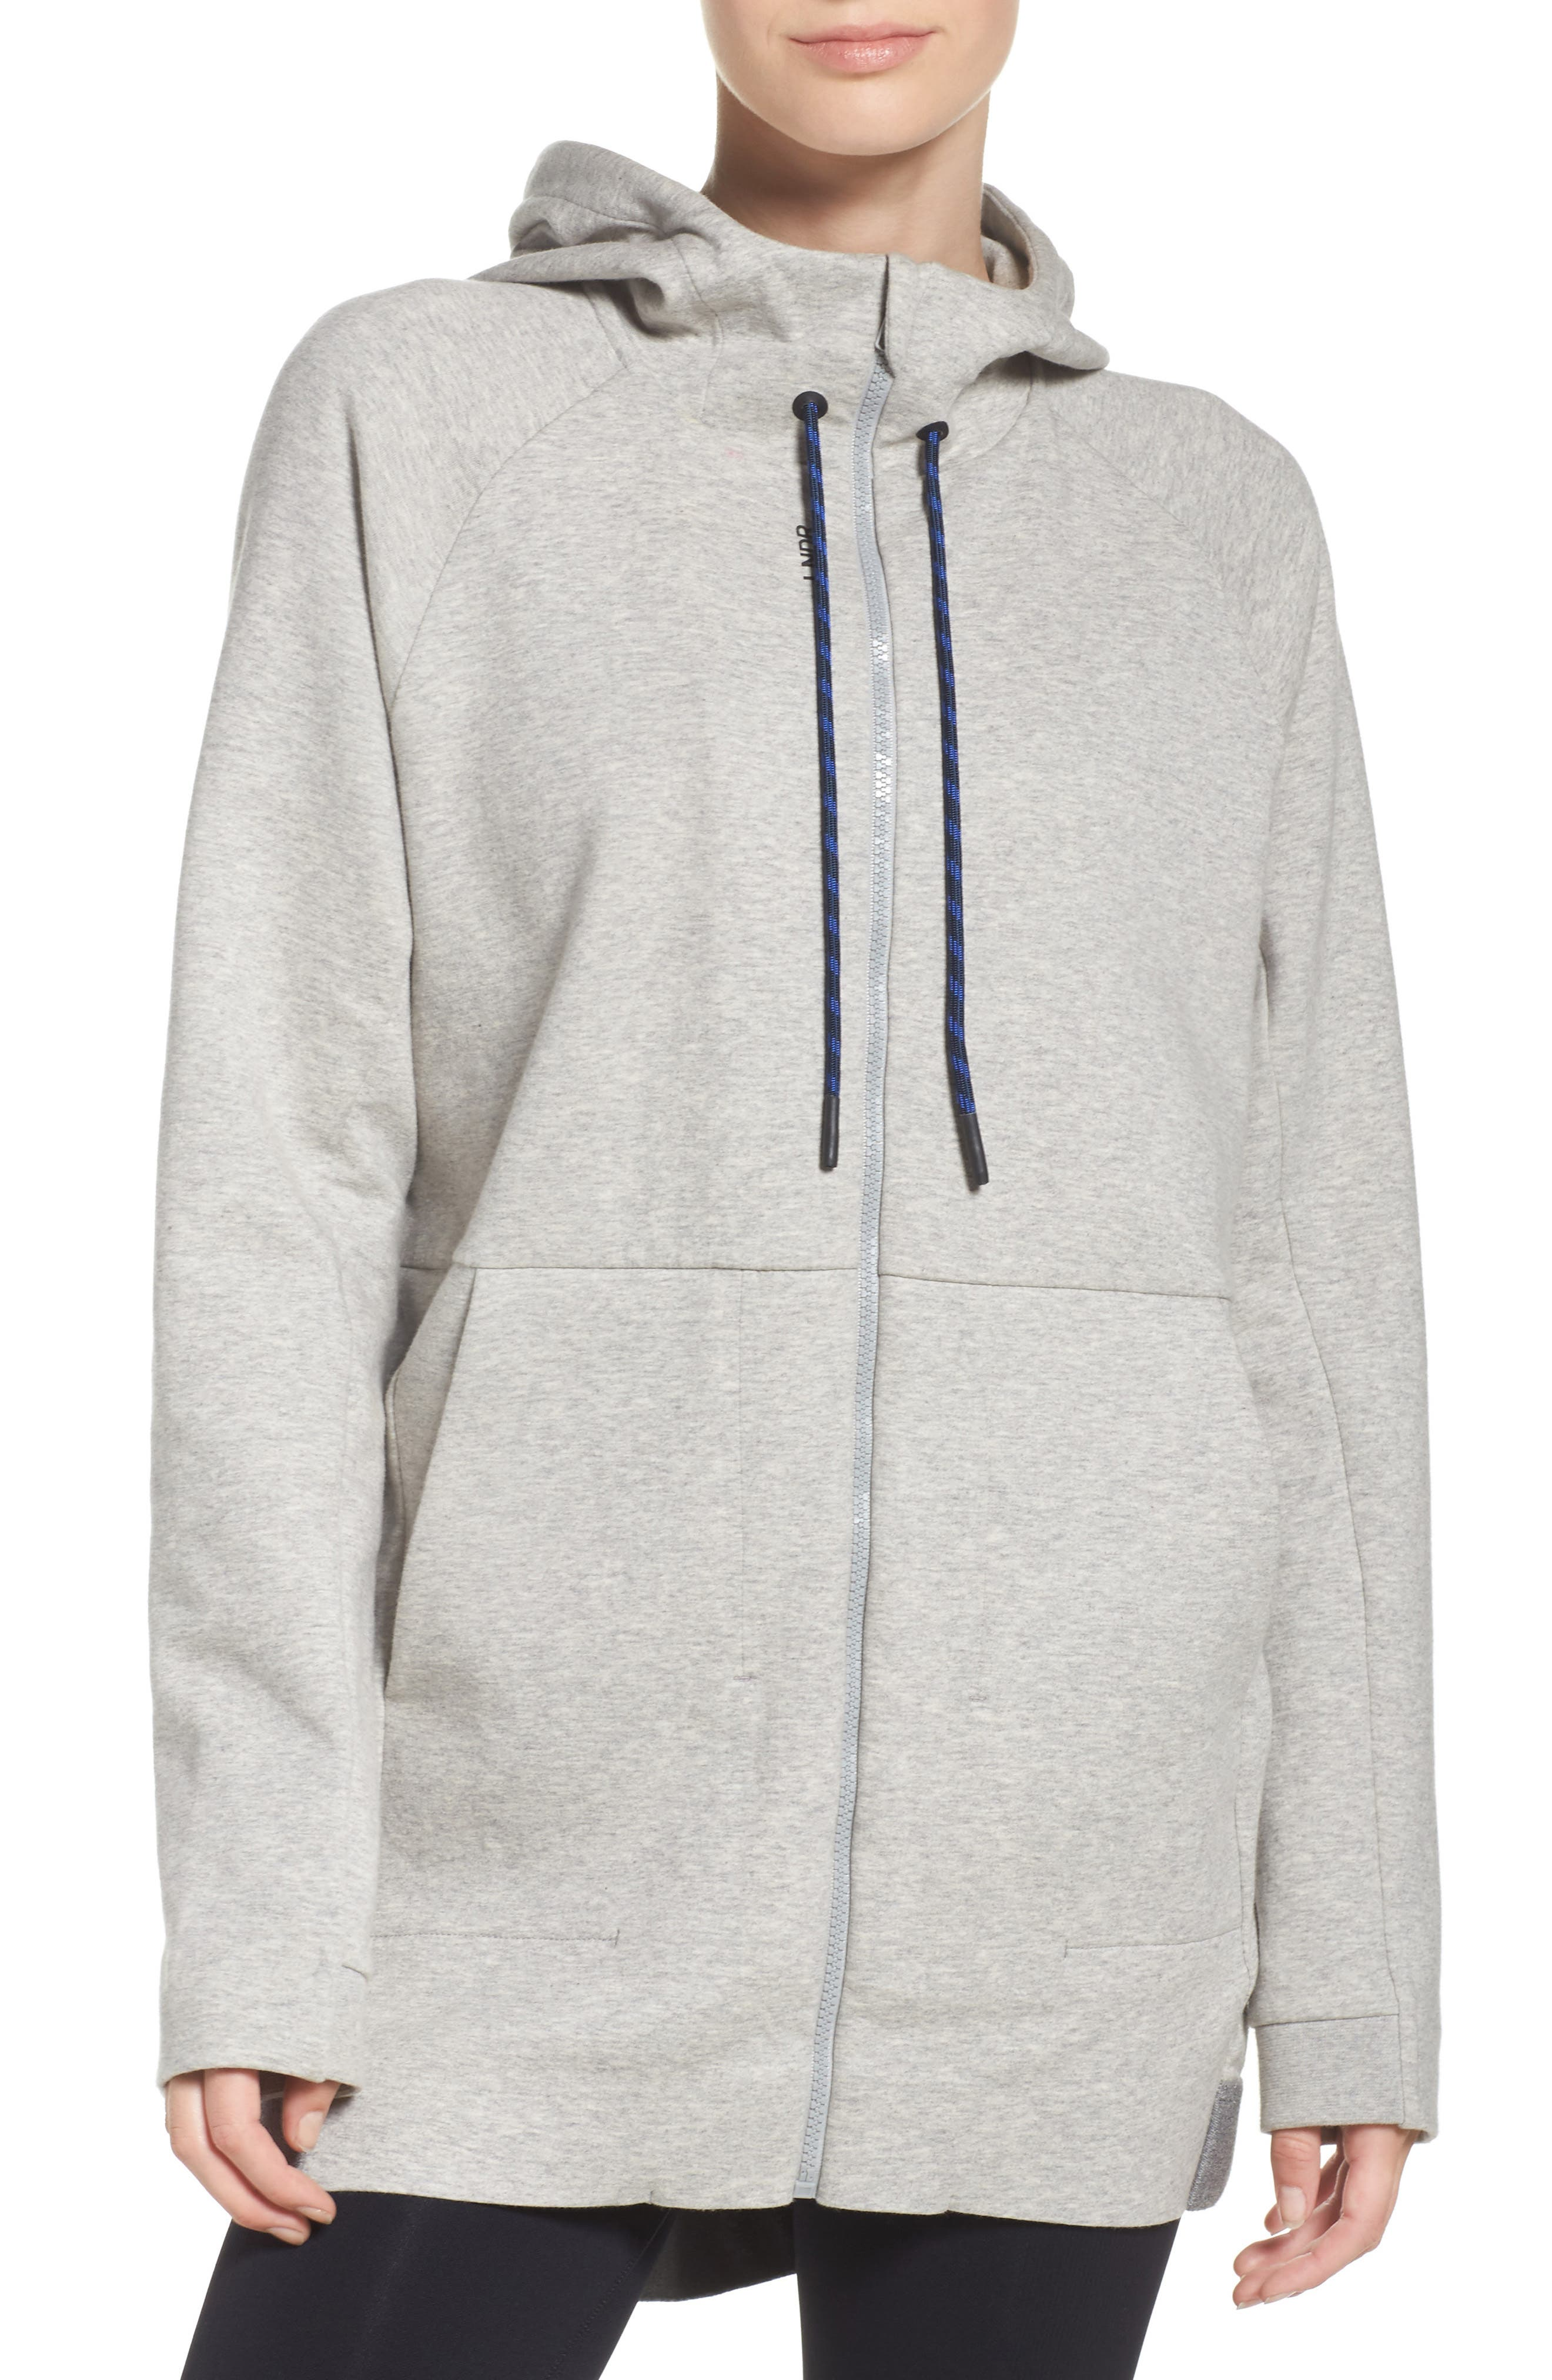 Switch Oversize Hoodie,                             Main thumbnail 1, color,                             020